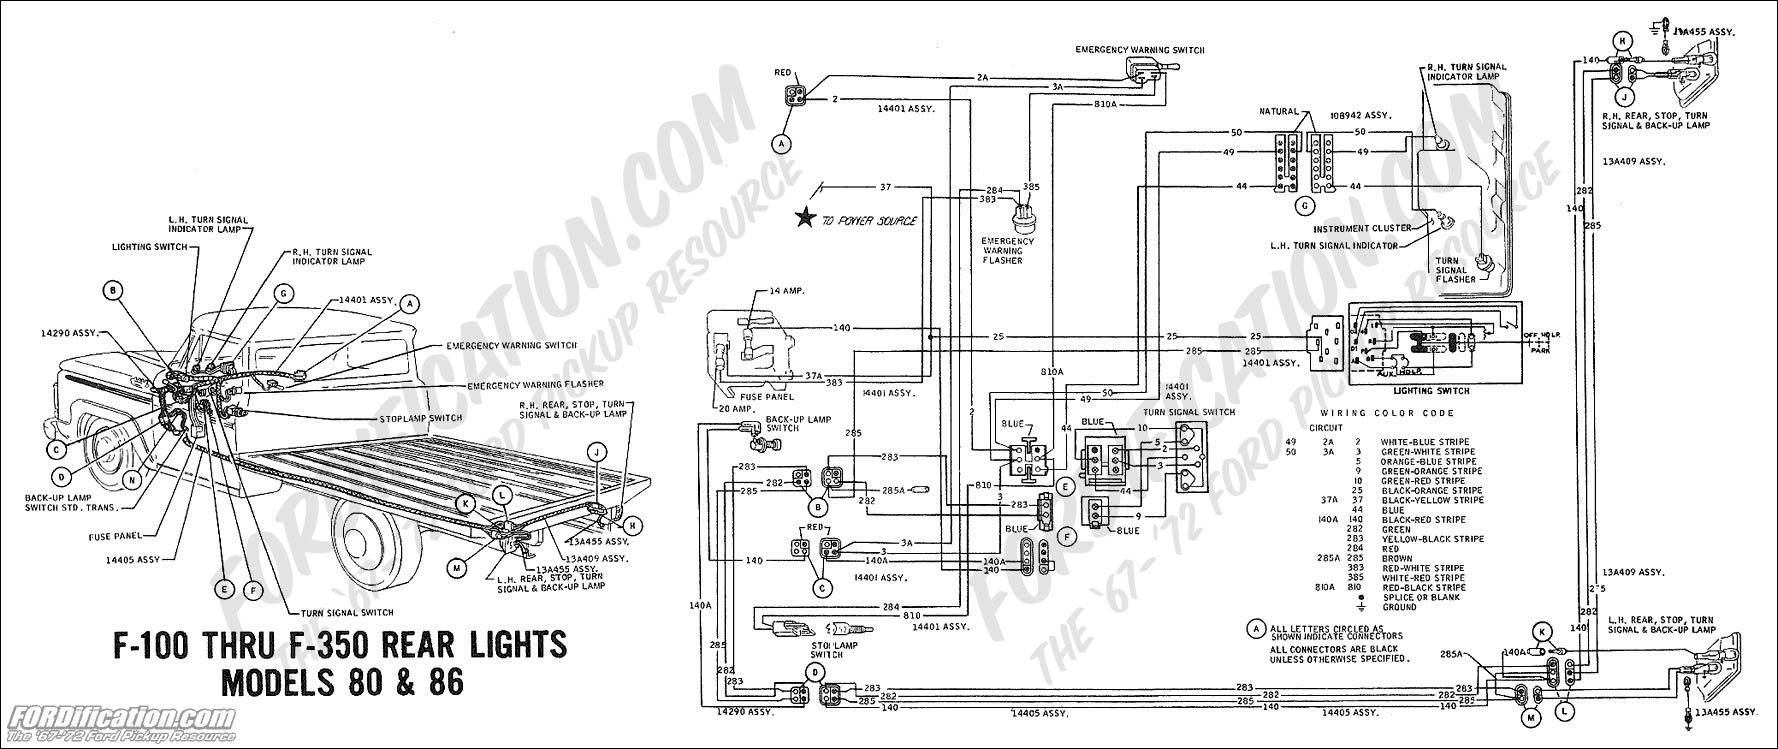 wiring_69rearlights mdls80 86 1994 f700 wiring diagram on 1994 download wirning diagrams 1979 Corvette Fuse Box Diagram at bayanpartner.co